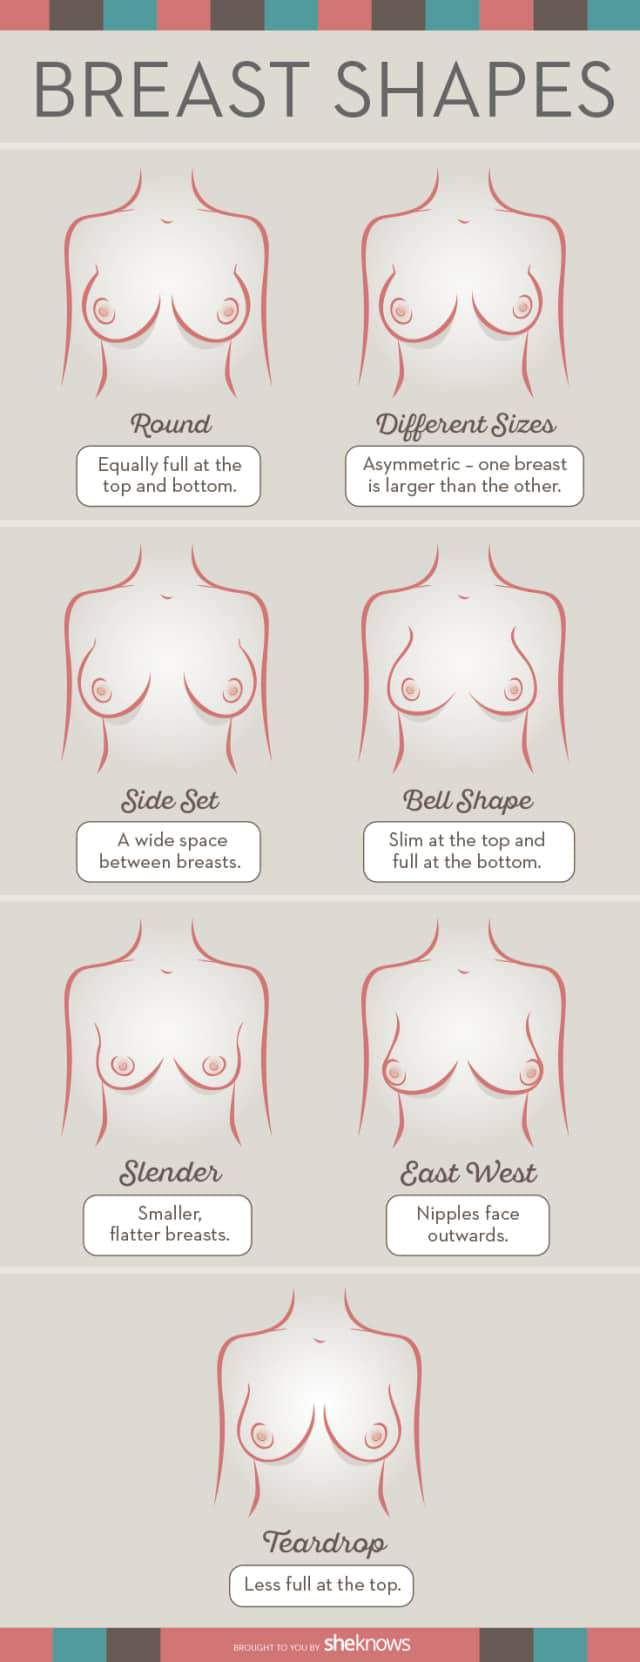 96d125819d How To Determine Your Breast Shape To Find Your Perfect Bra!